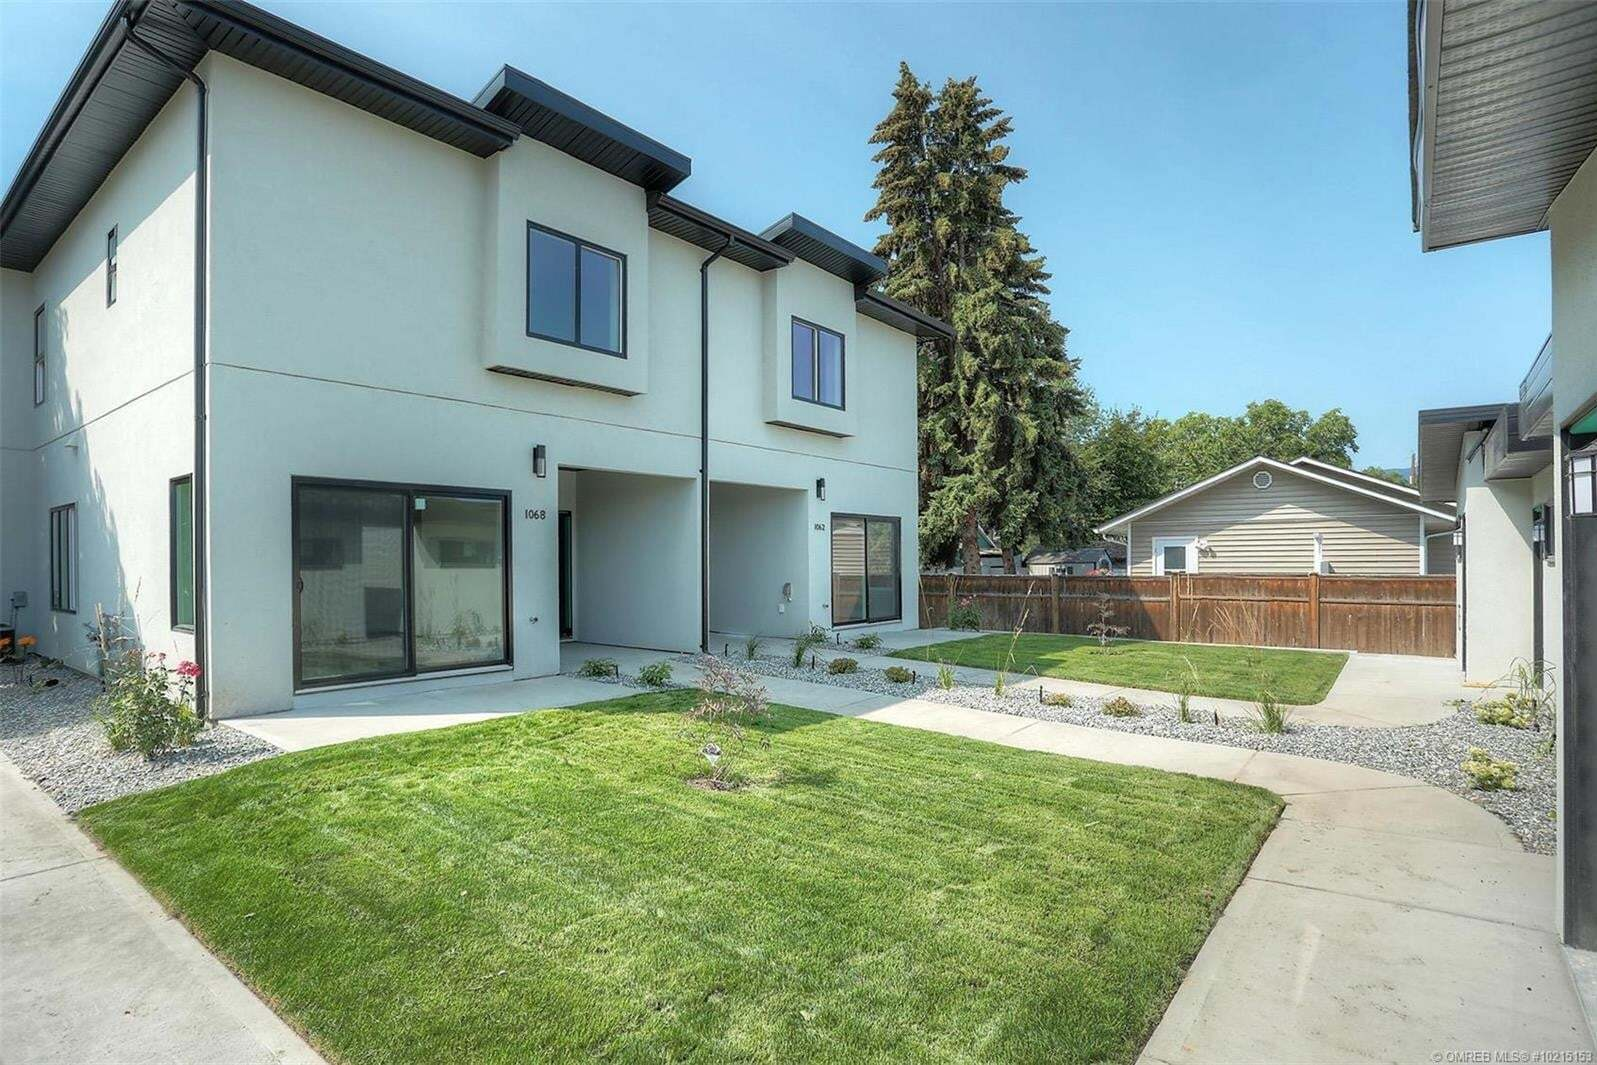 Townhouse for sale at 1068 Lawson Ave Kelowna British Columbia - MLS: 10215153